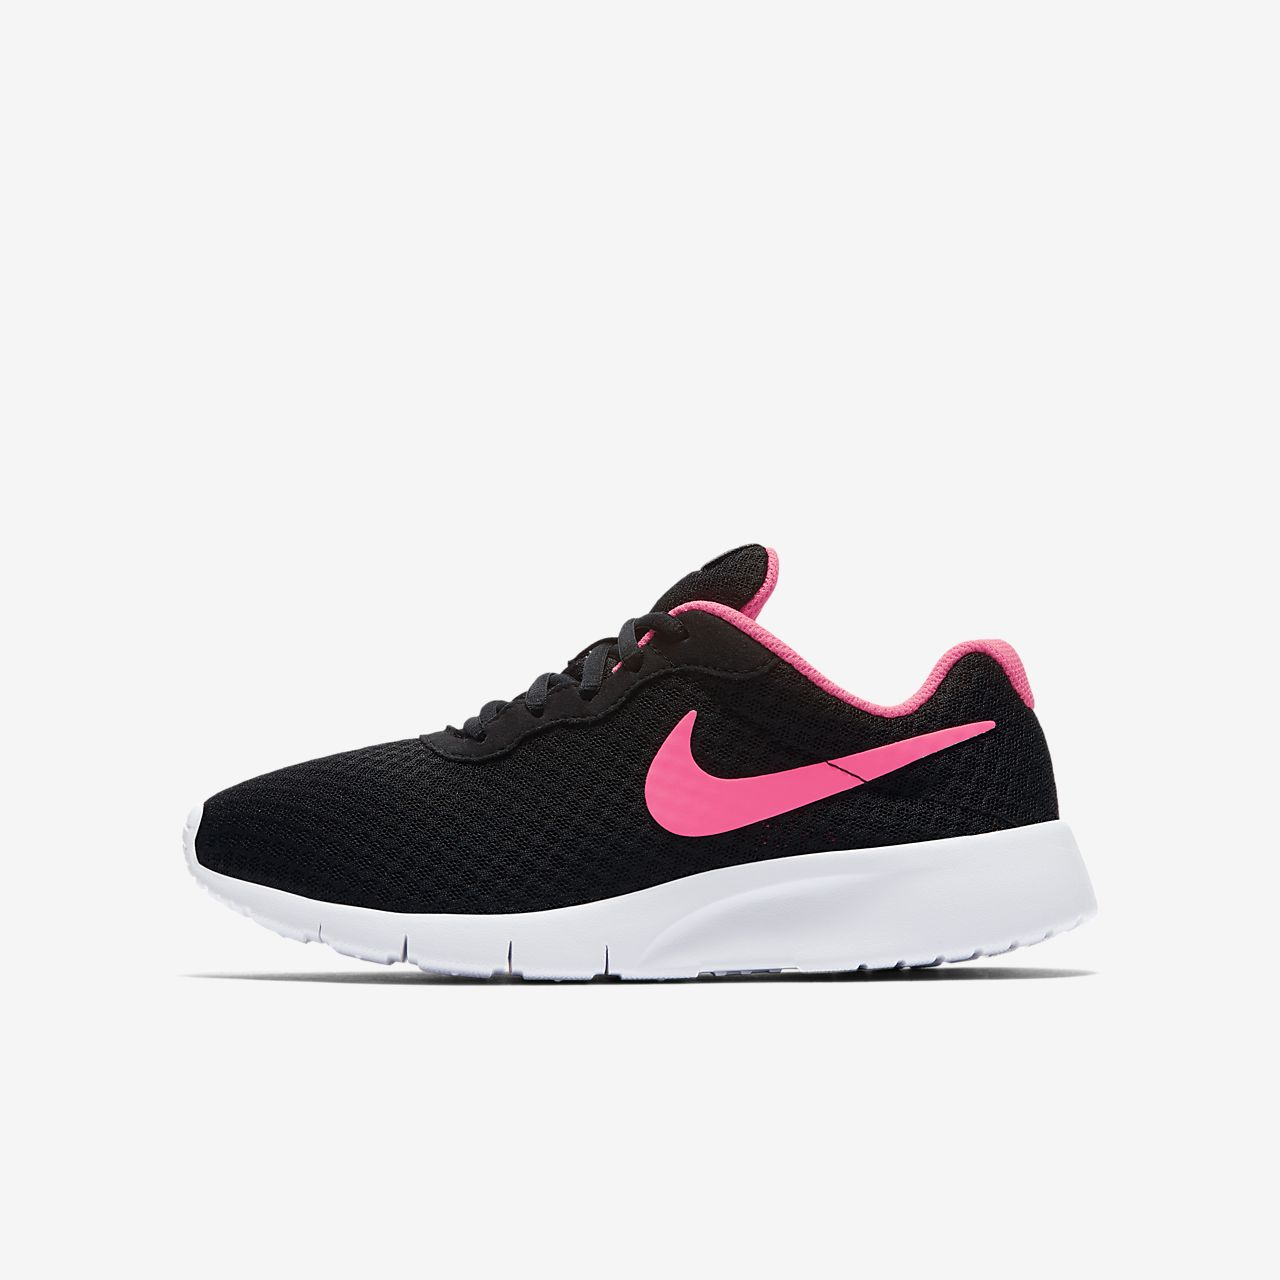 nike tanjun pink black nz